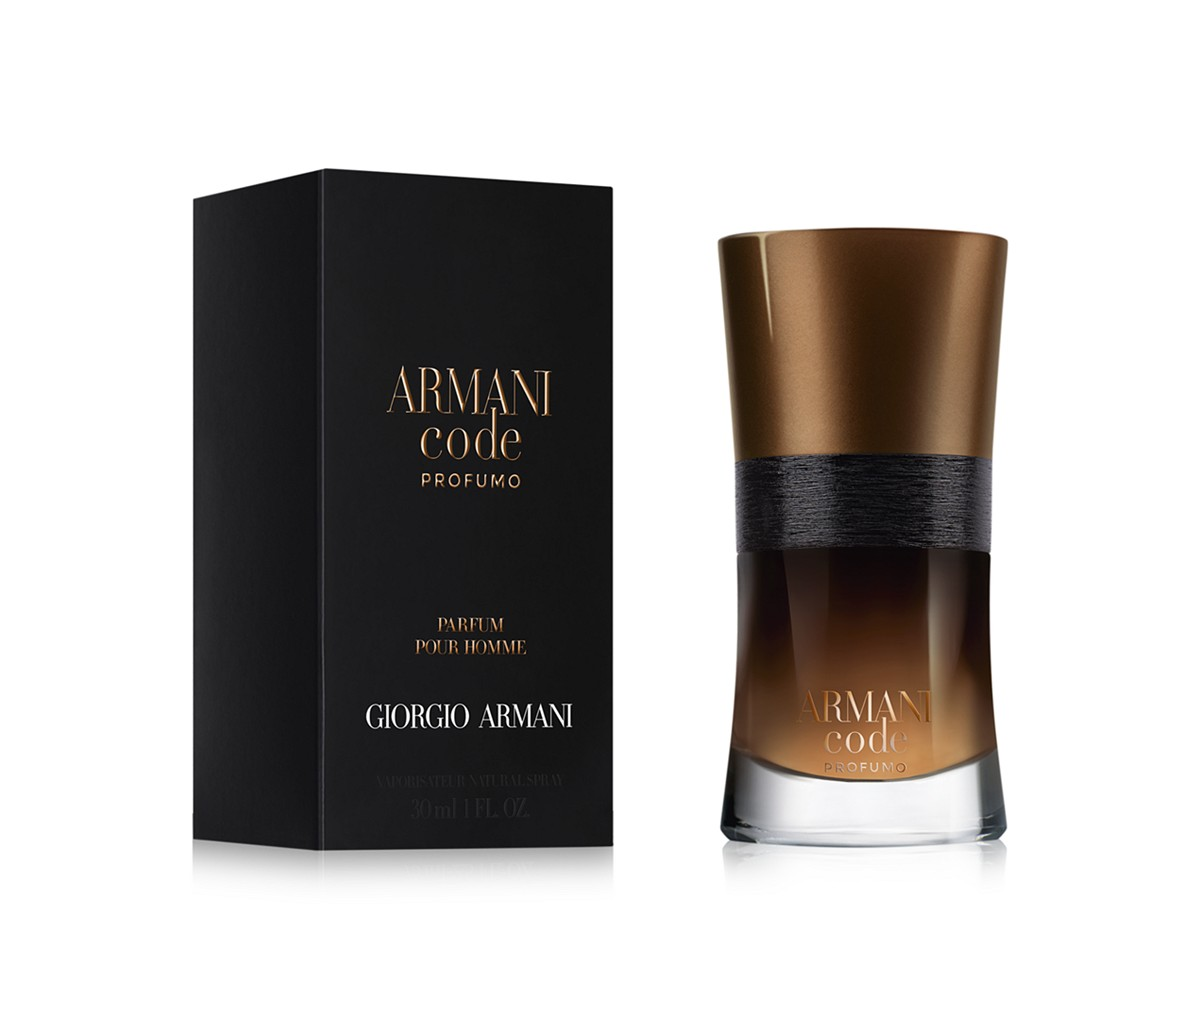 Perfumania is America's largest fragrance destination with over stores nationwide and 30 years of fragrance expertise. Shop brands like like Vince Camuto, Gucci, Marc Jacobs, Calvin Klein, Juicy Couture, Dolce & Gabbana, and more.